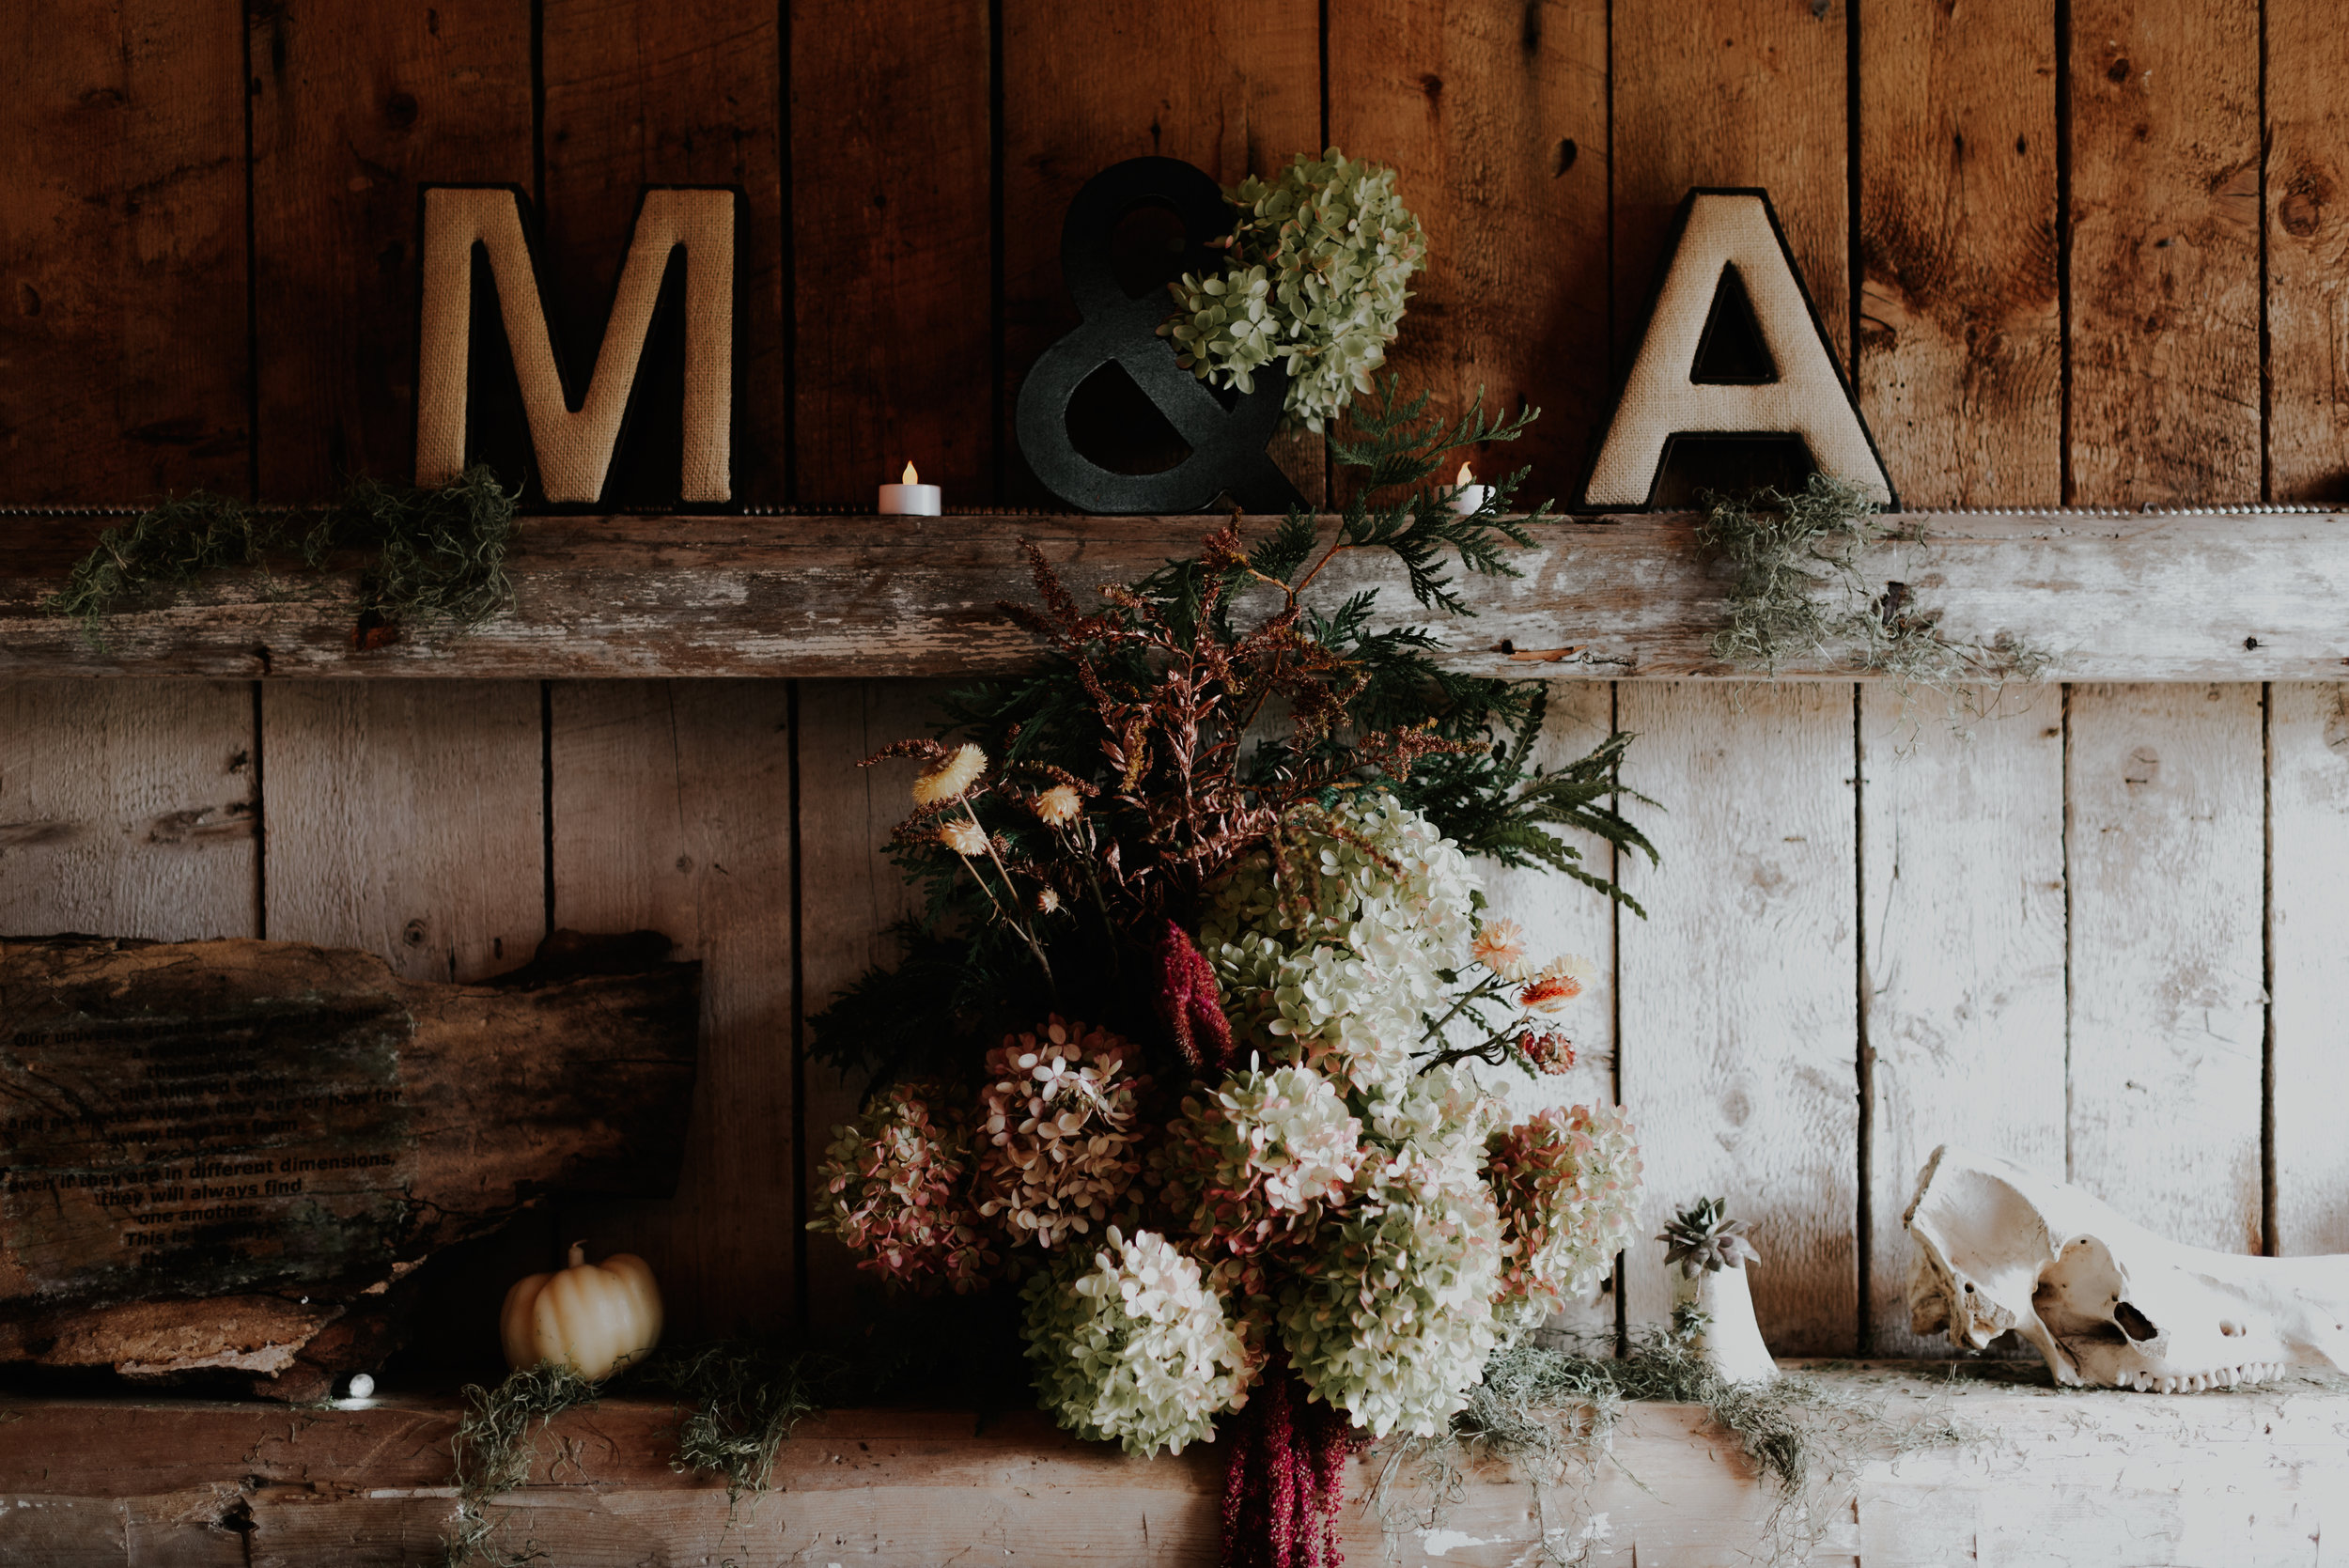 wildsoulsstudio-intimate woodland wedding-the little farm at willoughby-dt-18.jpg